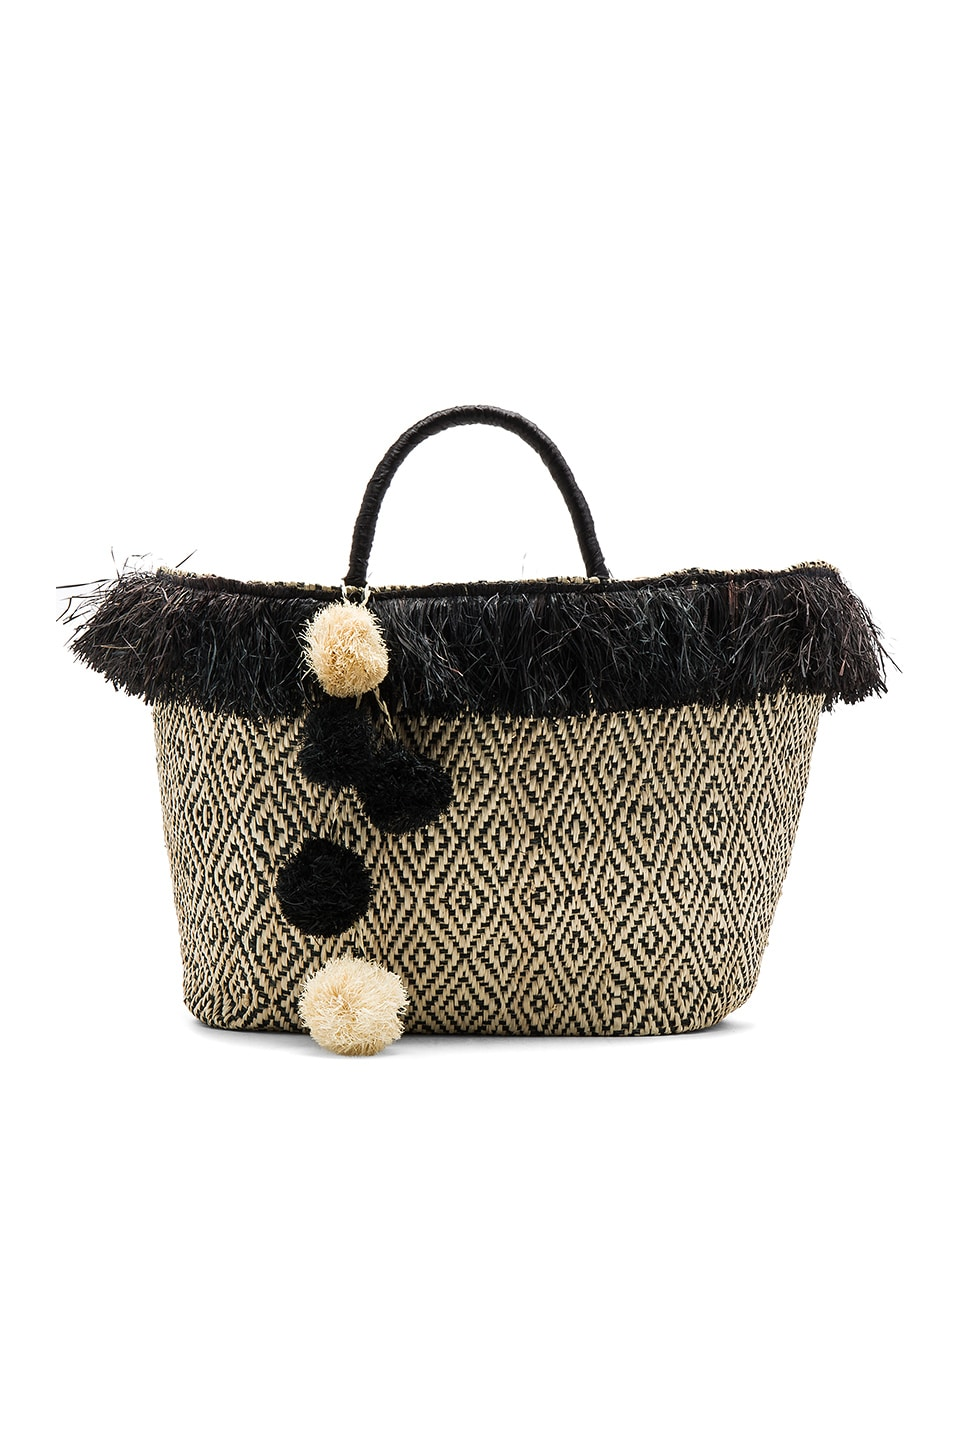 KAYU Kahuna Tote Bag in Black